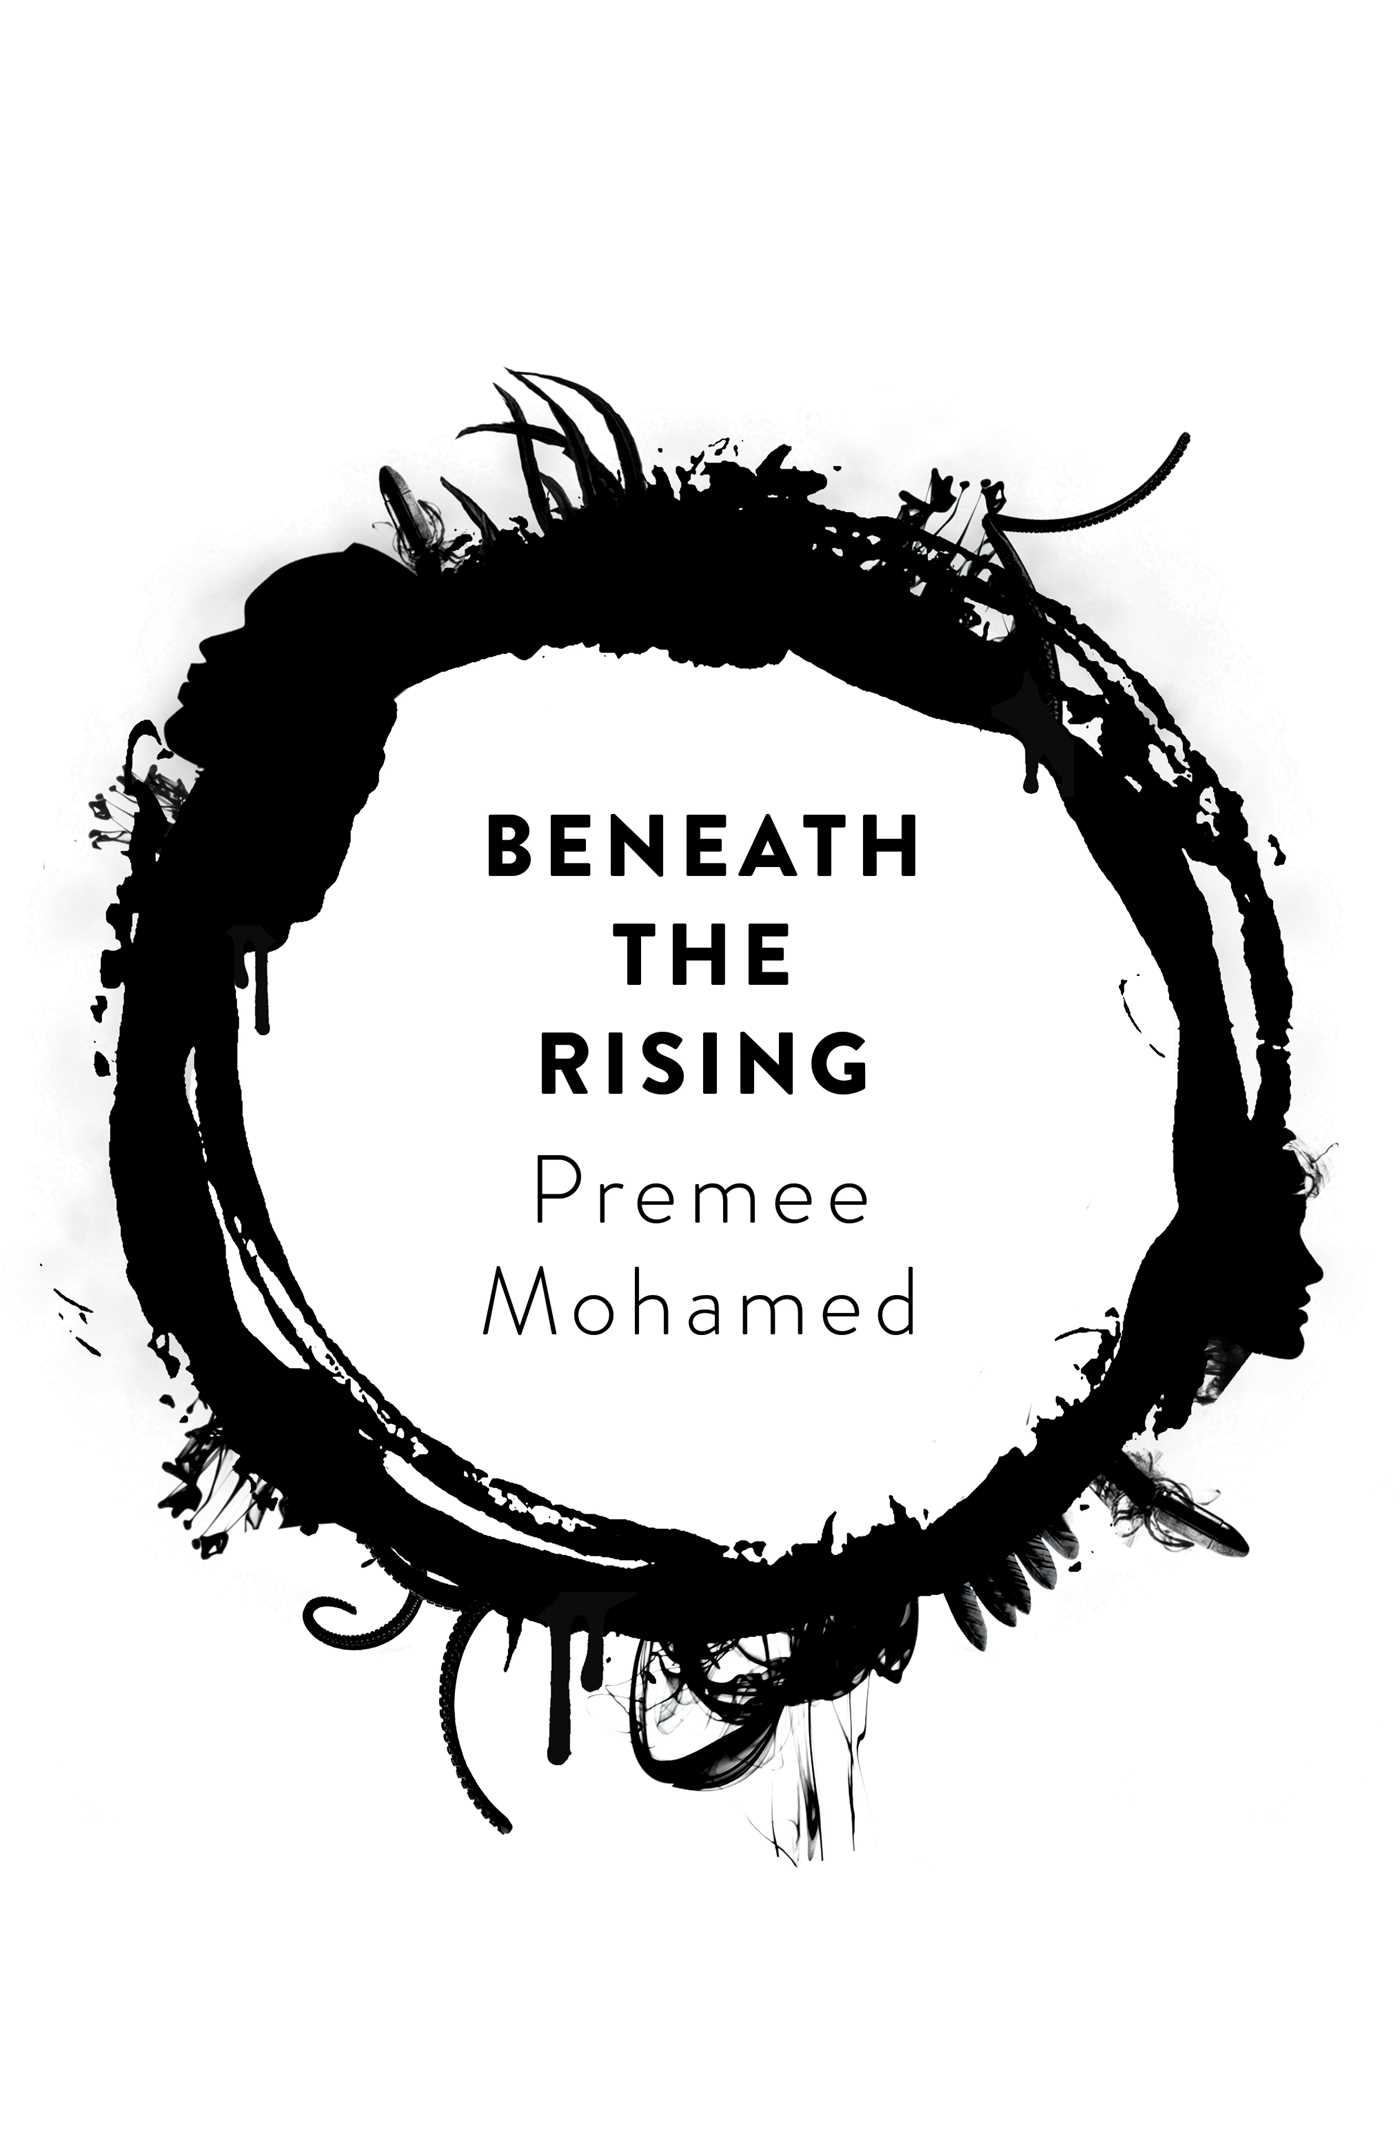 Beneath the Rising by Premee Mohamed